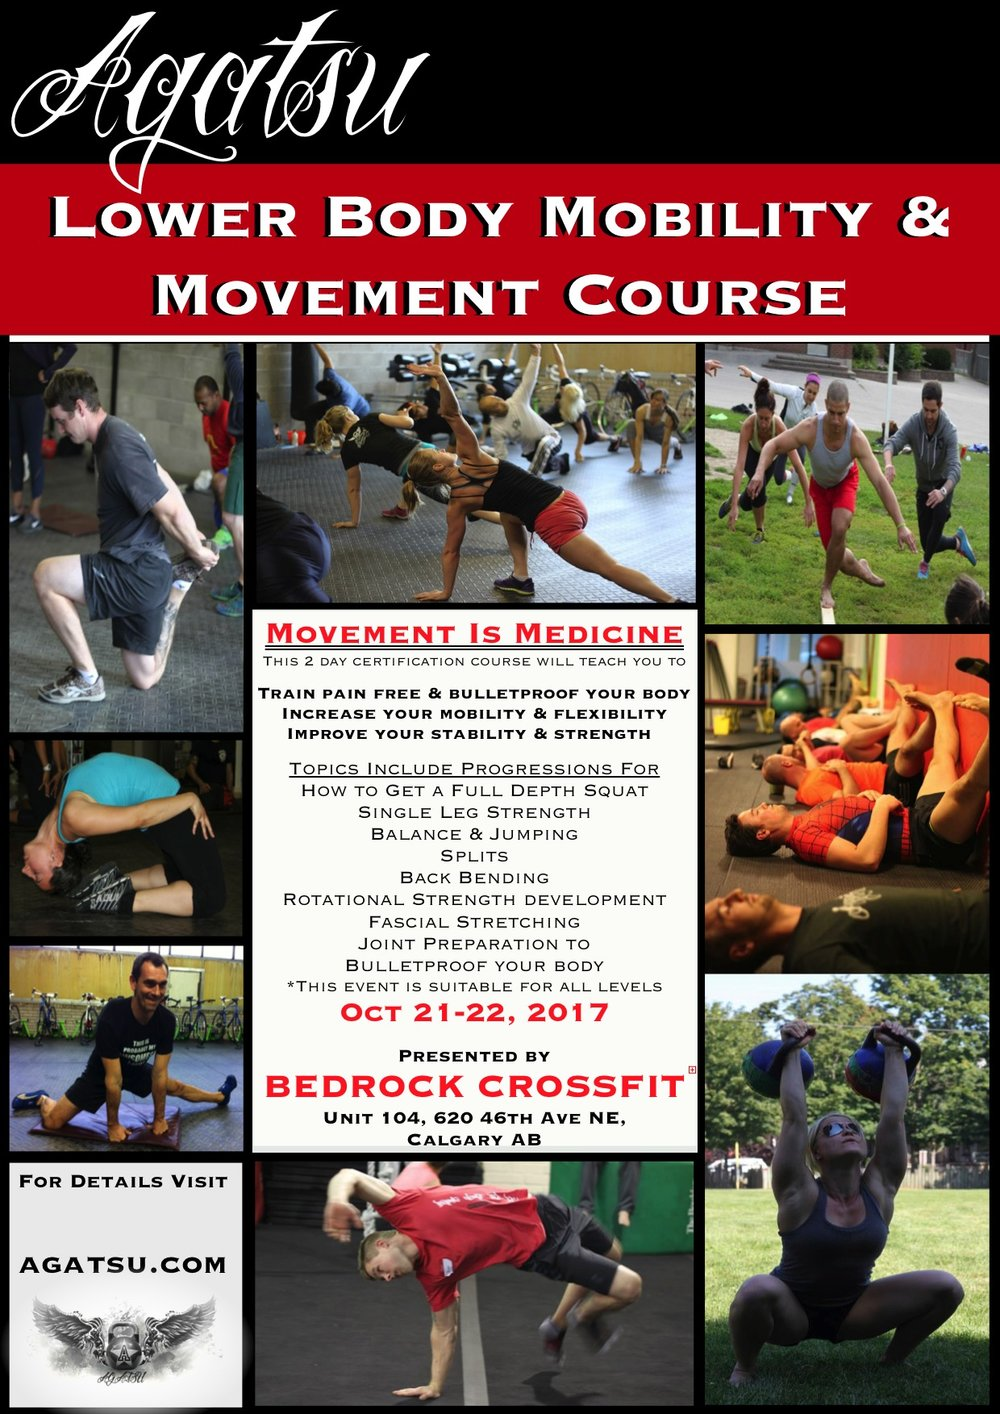 Agatsu Lower Body Mobility and Movement Course at Bedrock